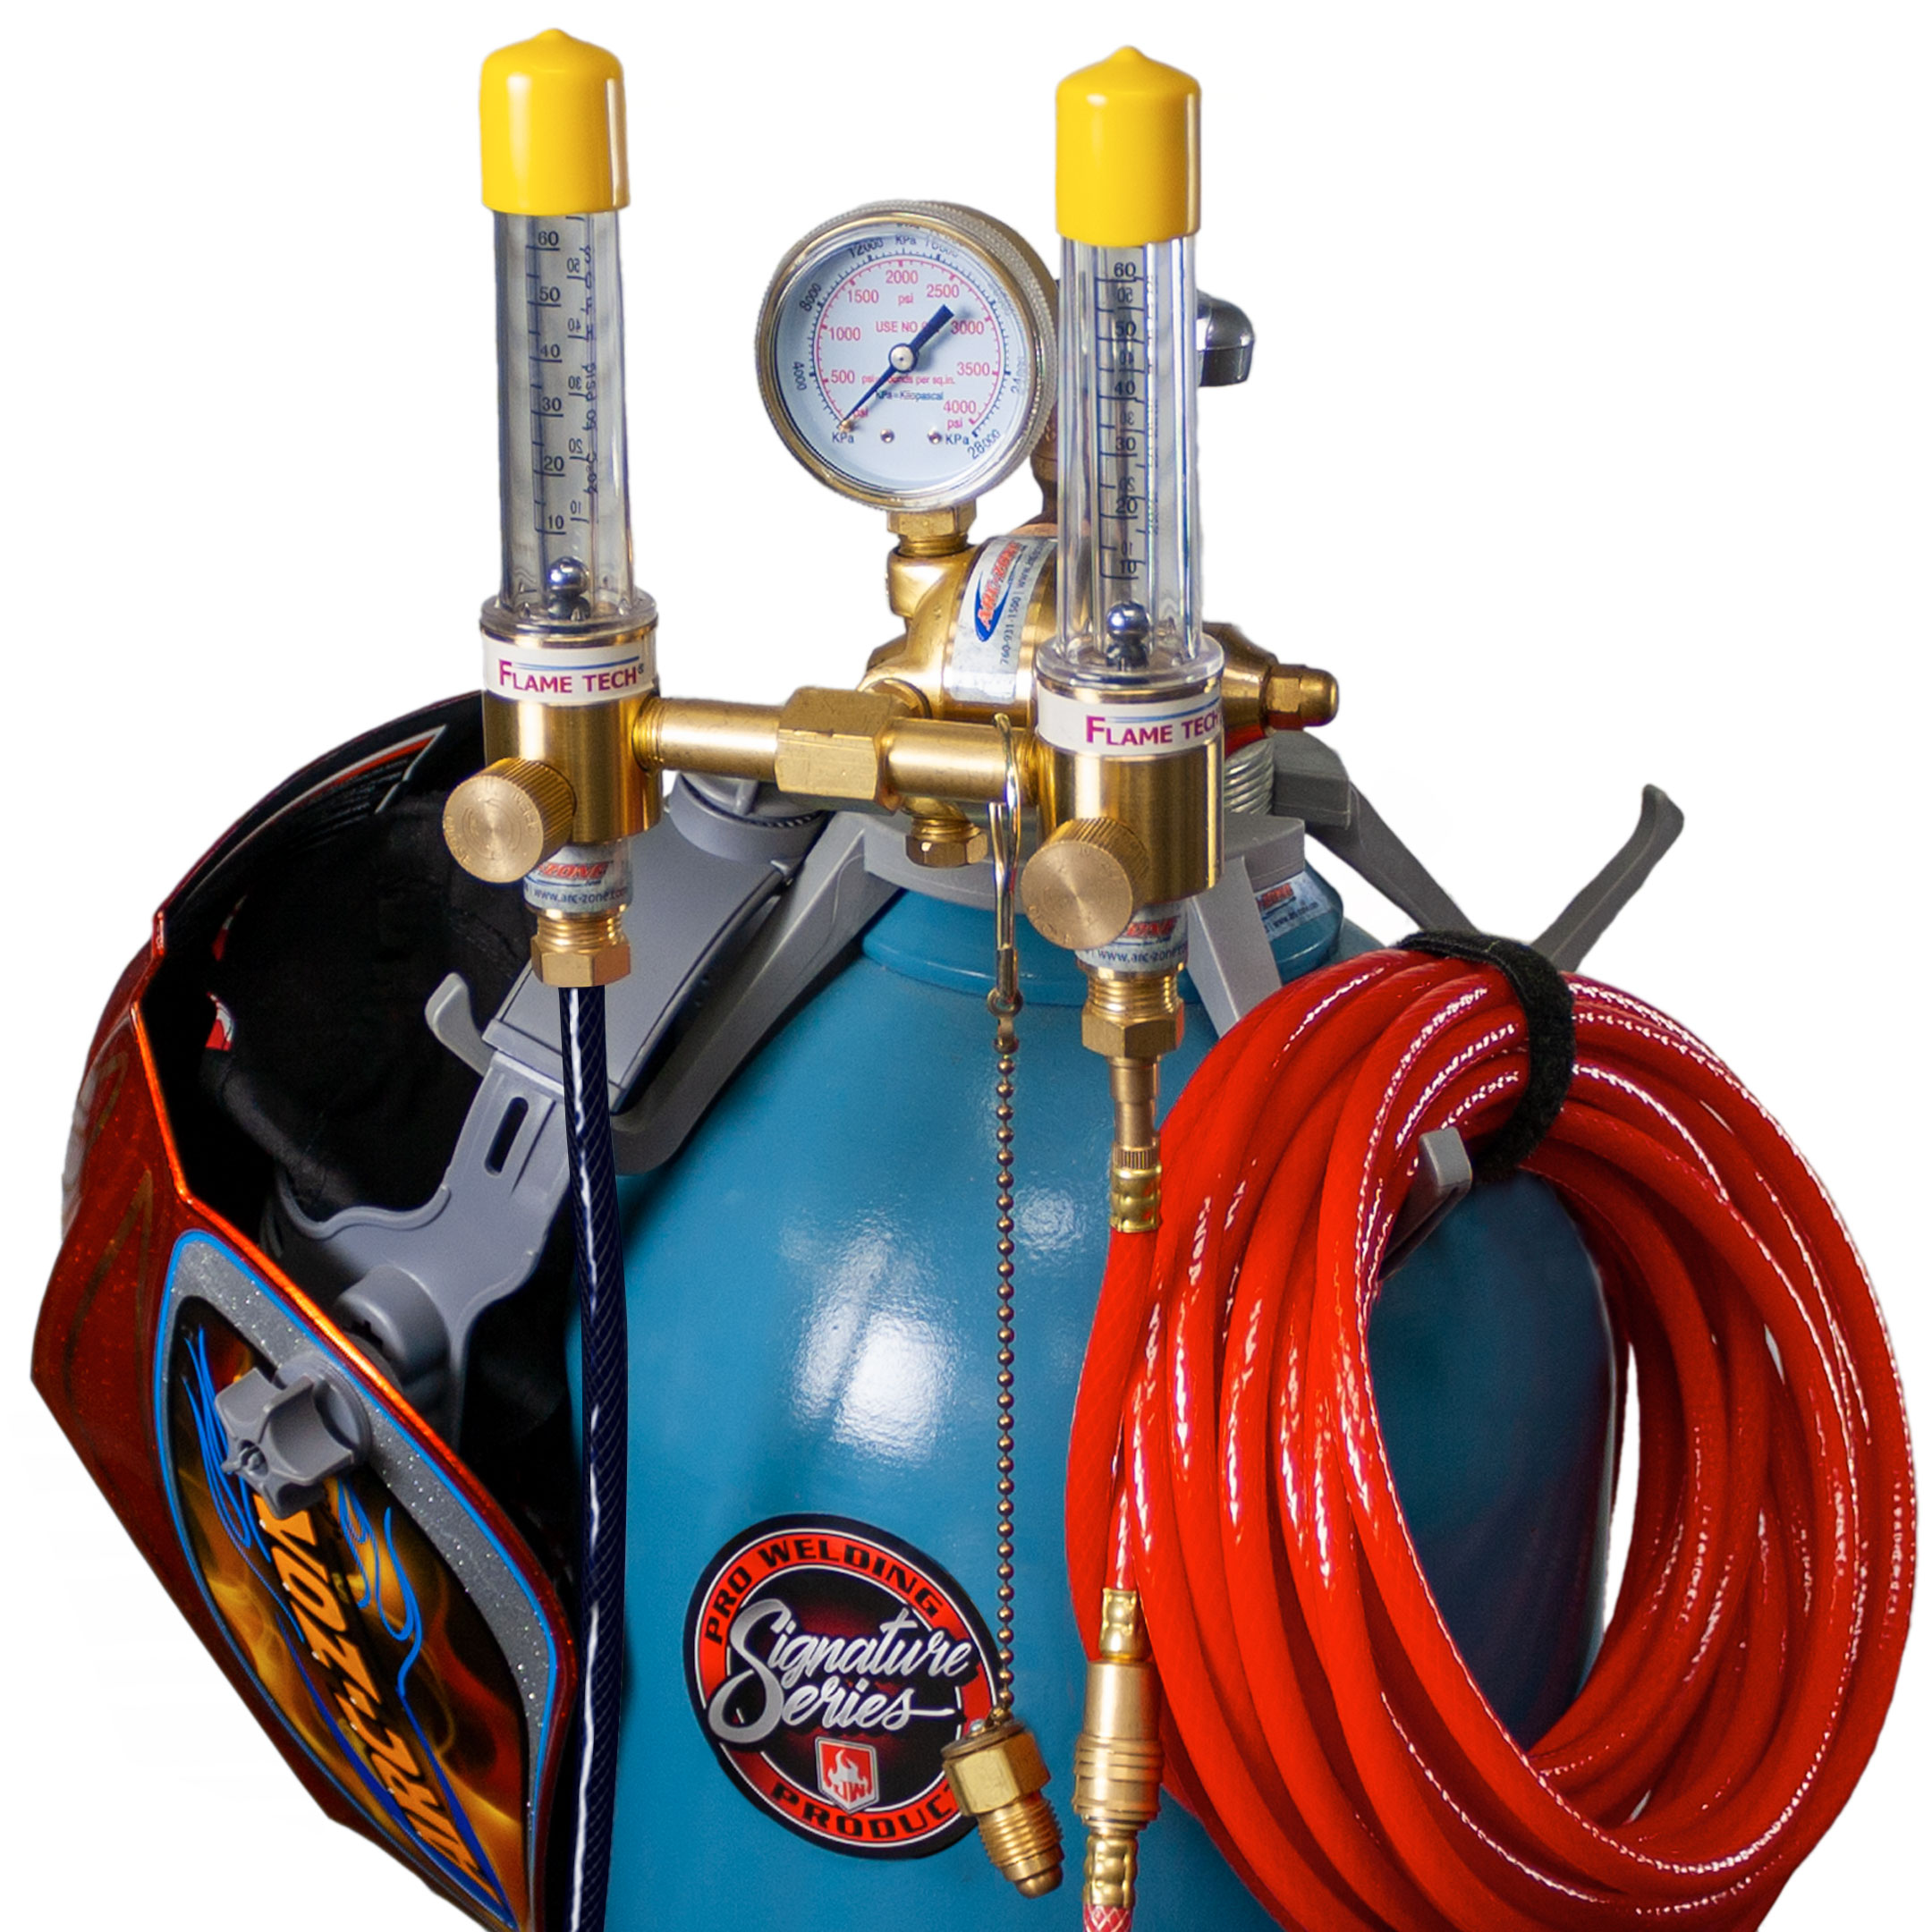 Dual Flow Meters & Gas Mixing Kits